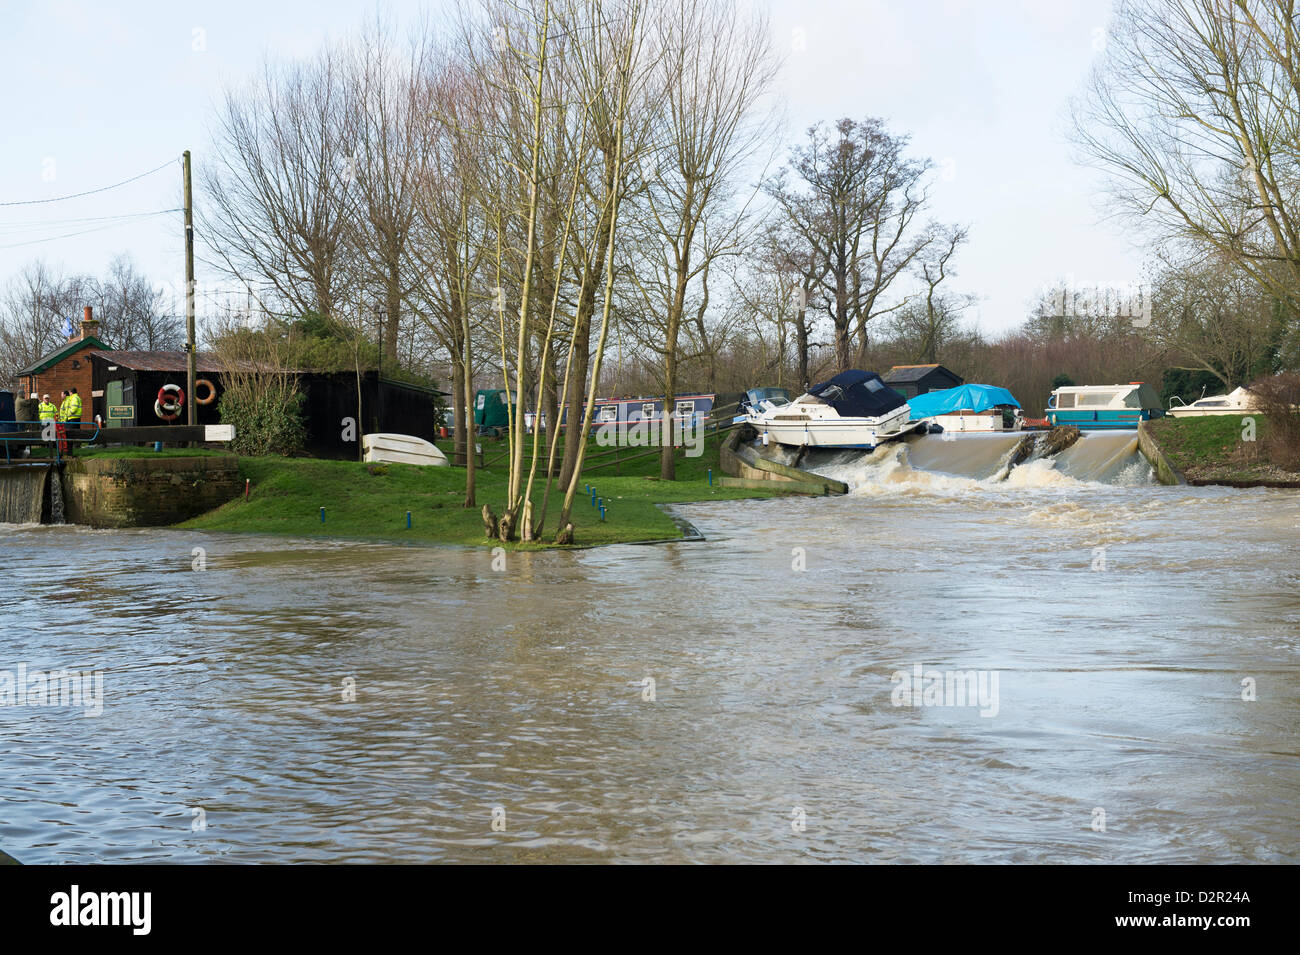 Little Baddow, Essex, UK. 31st January 2013.  A motor cruiser, Miss Behavin', sits precariously on a weir at Paper Stock Photo